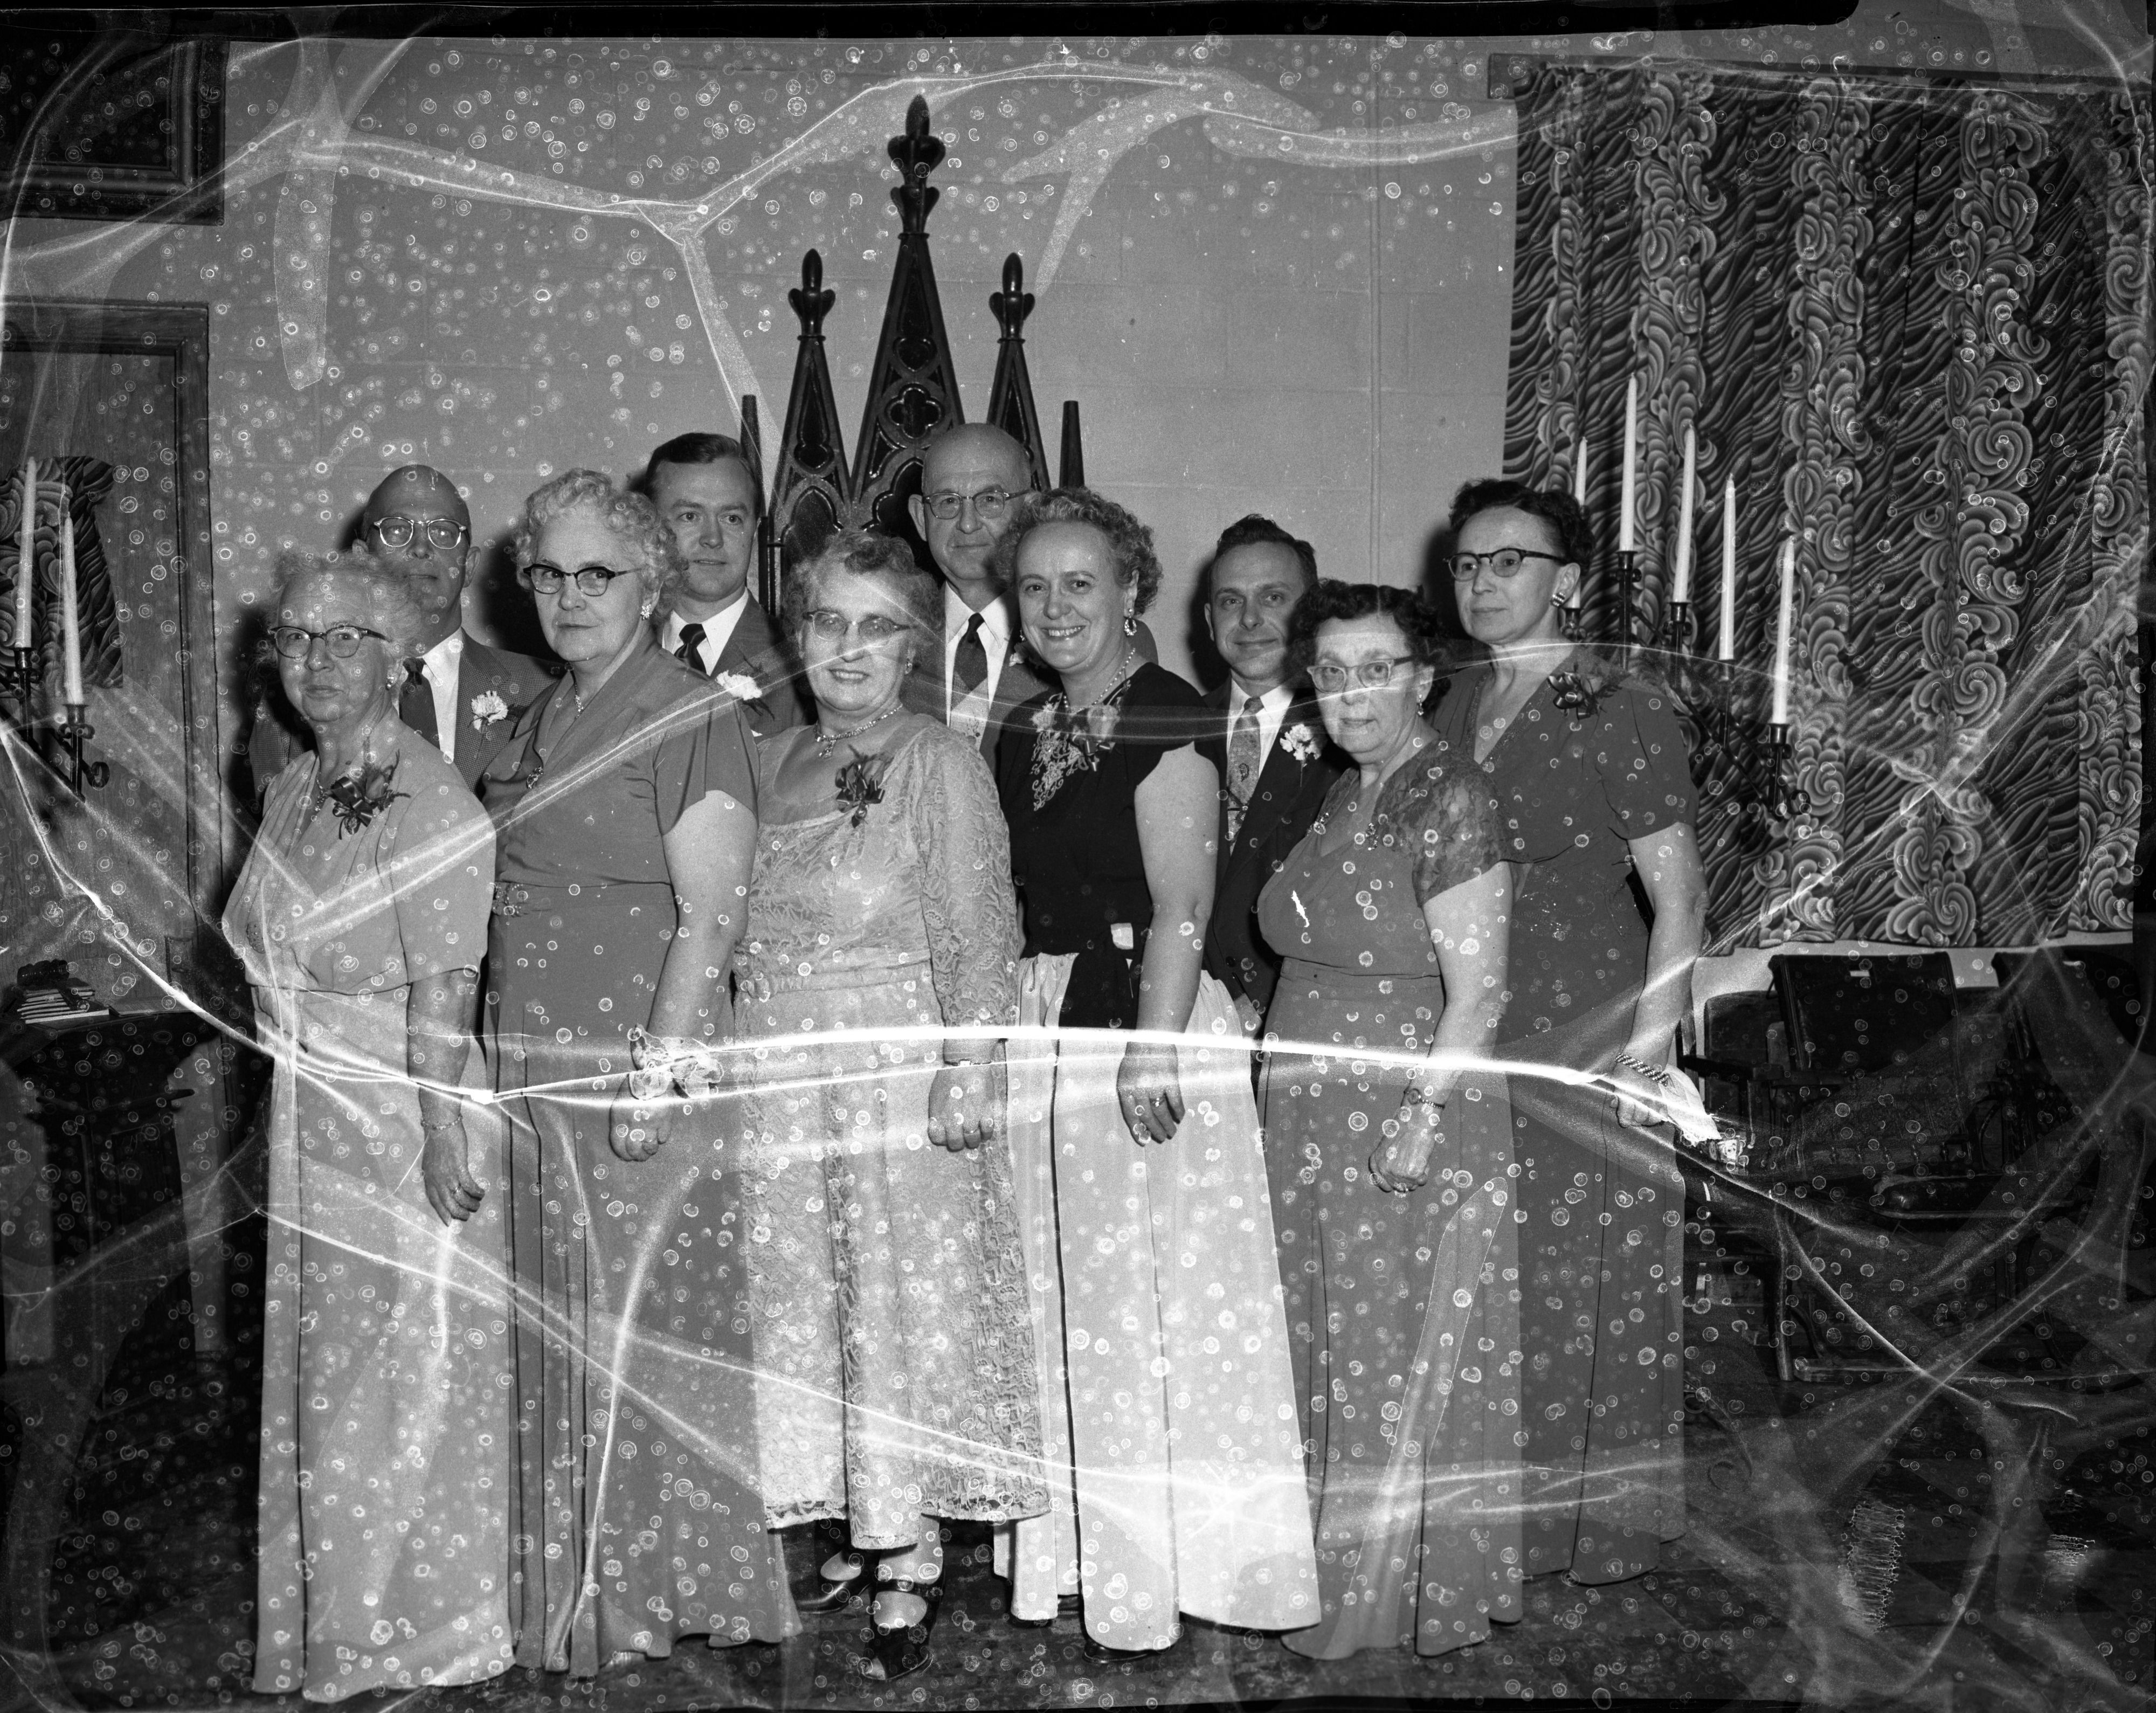 The Pythian Sisters and Knights of Pythias of Queen City, Lodge 167, Ypsilanti, January 1955 image